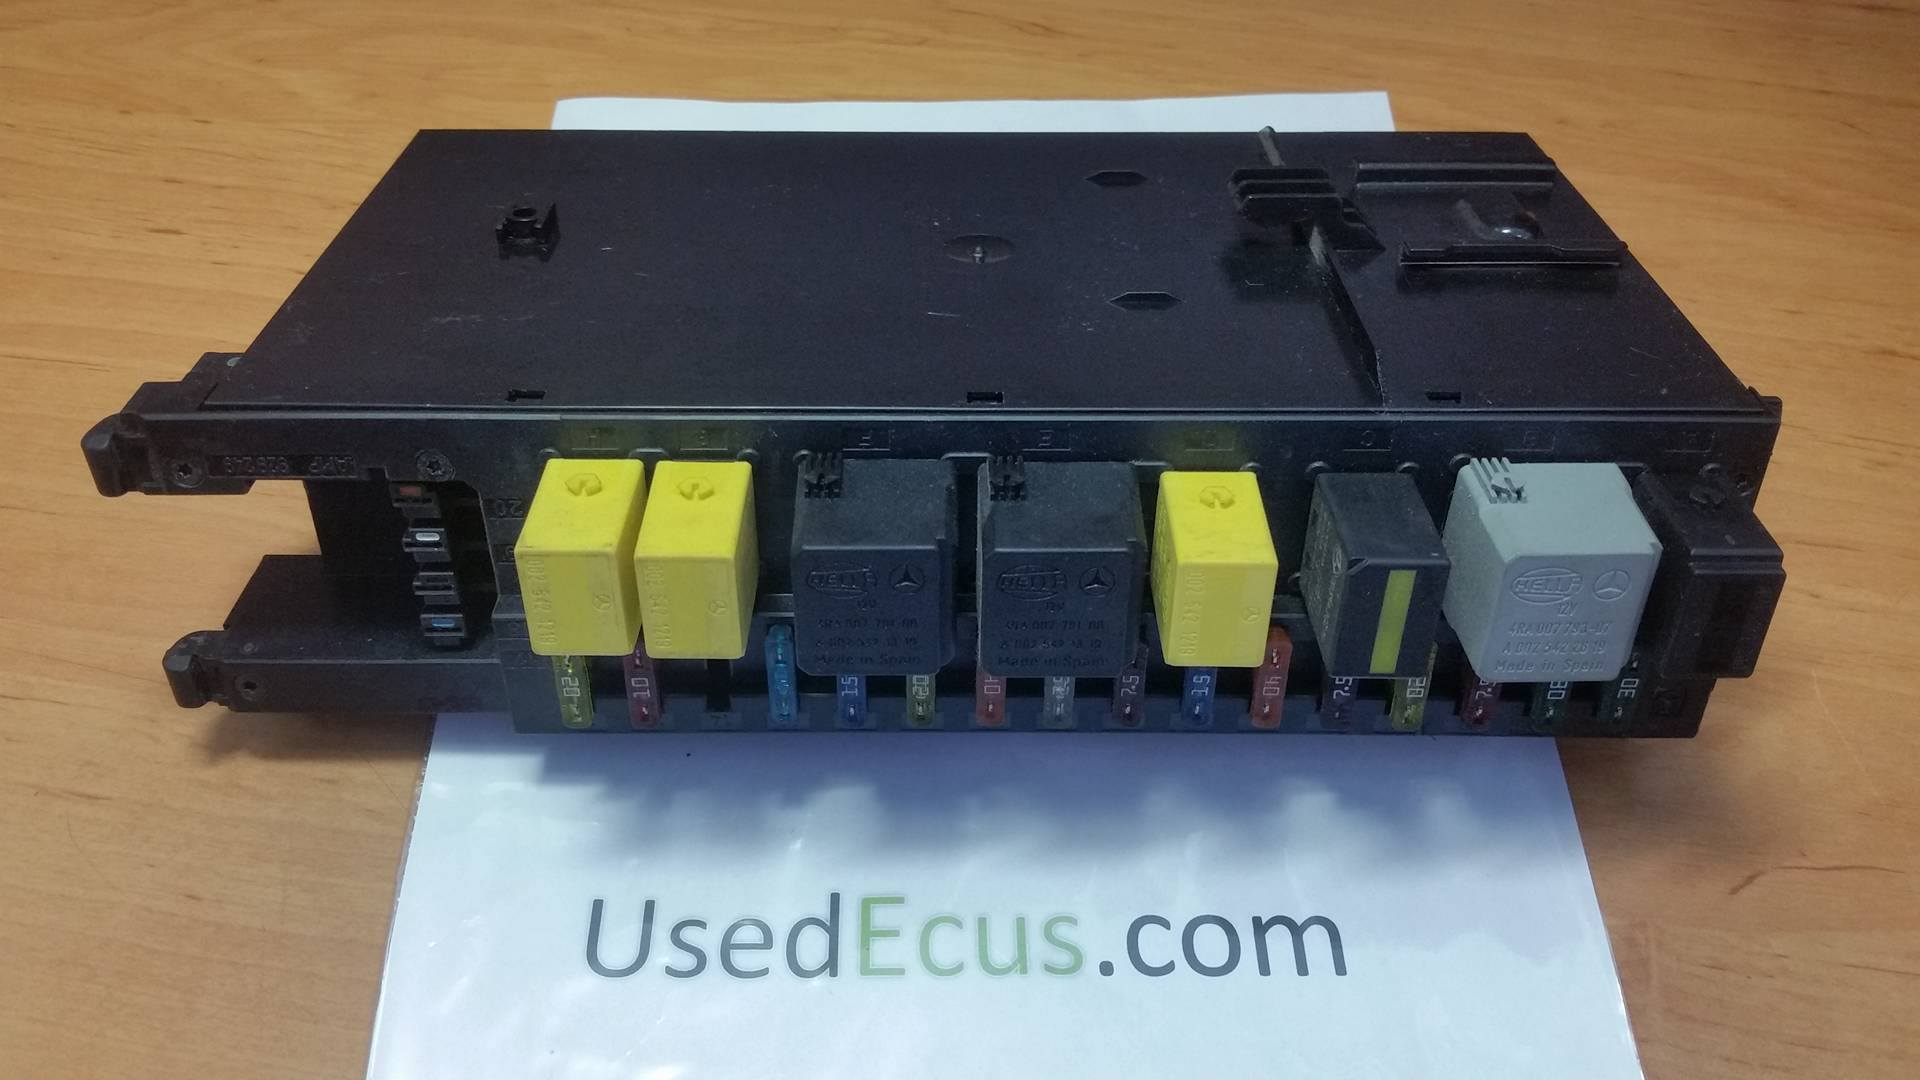 Skoda Fabia Estate Fuse Box Mercedes Benz E Class W211 E320 Cdi 2002 2008 Price